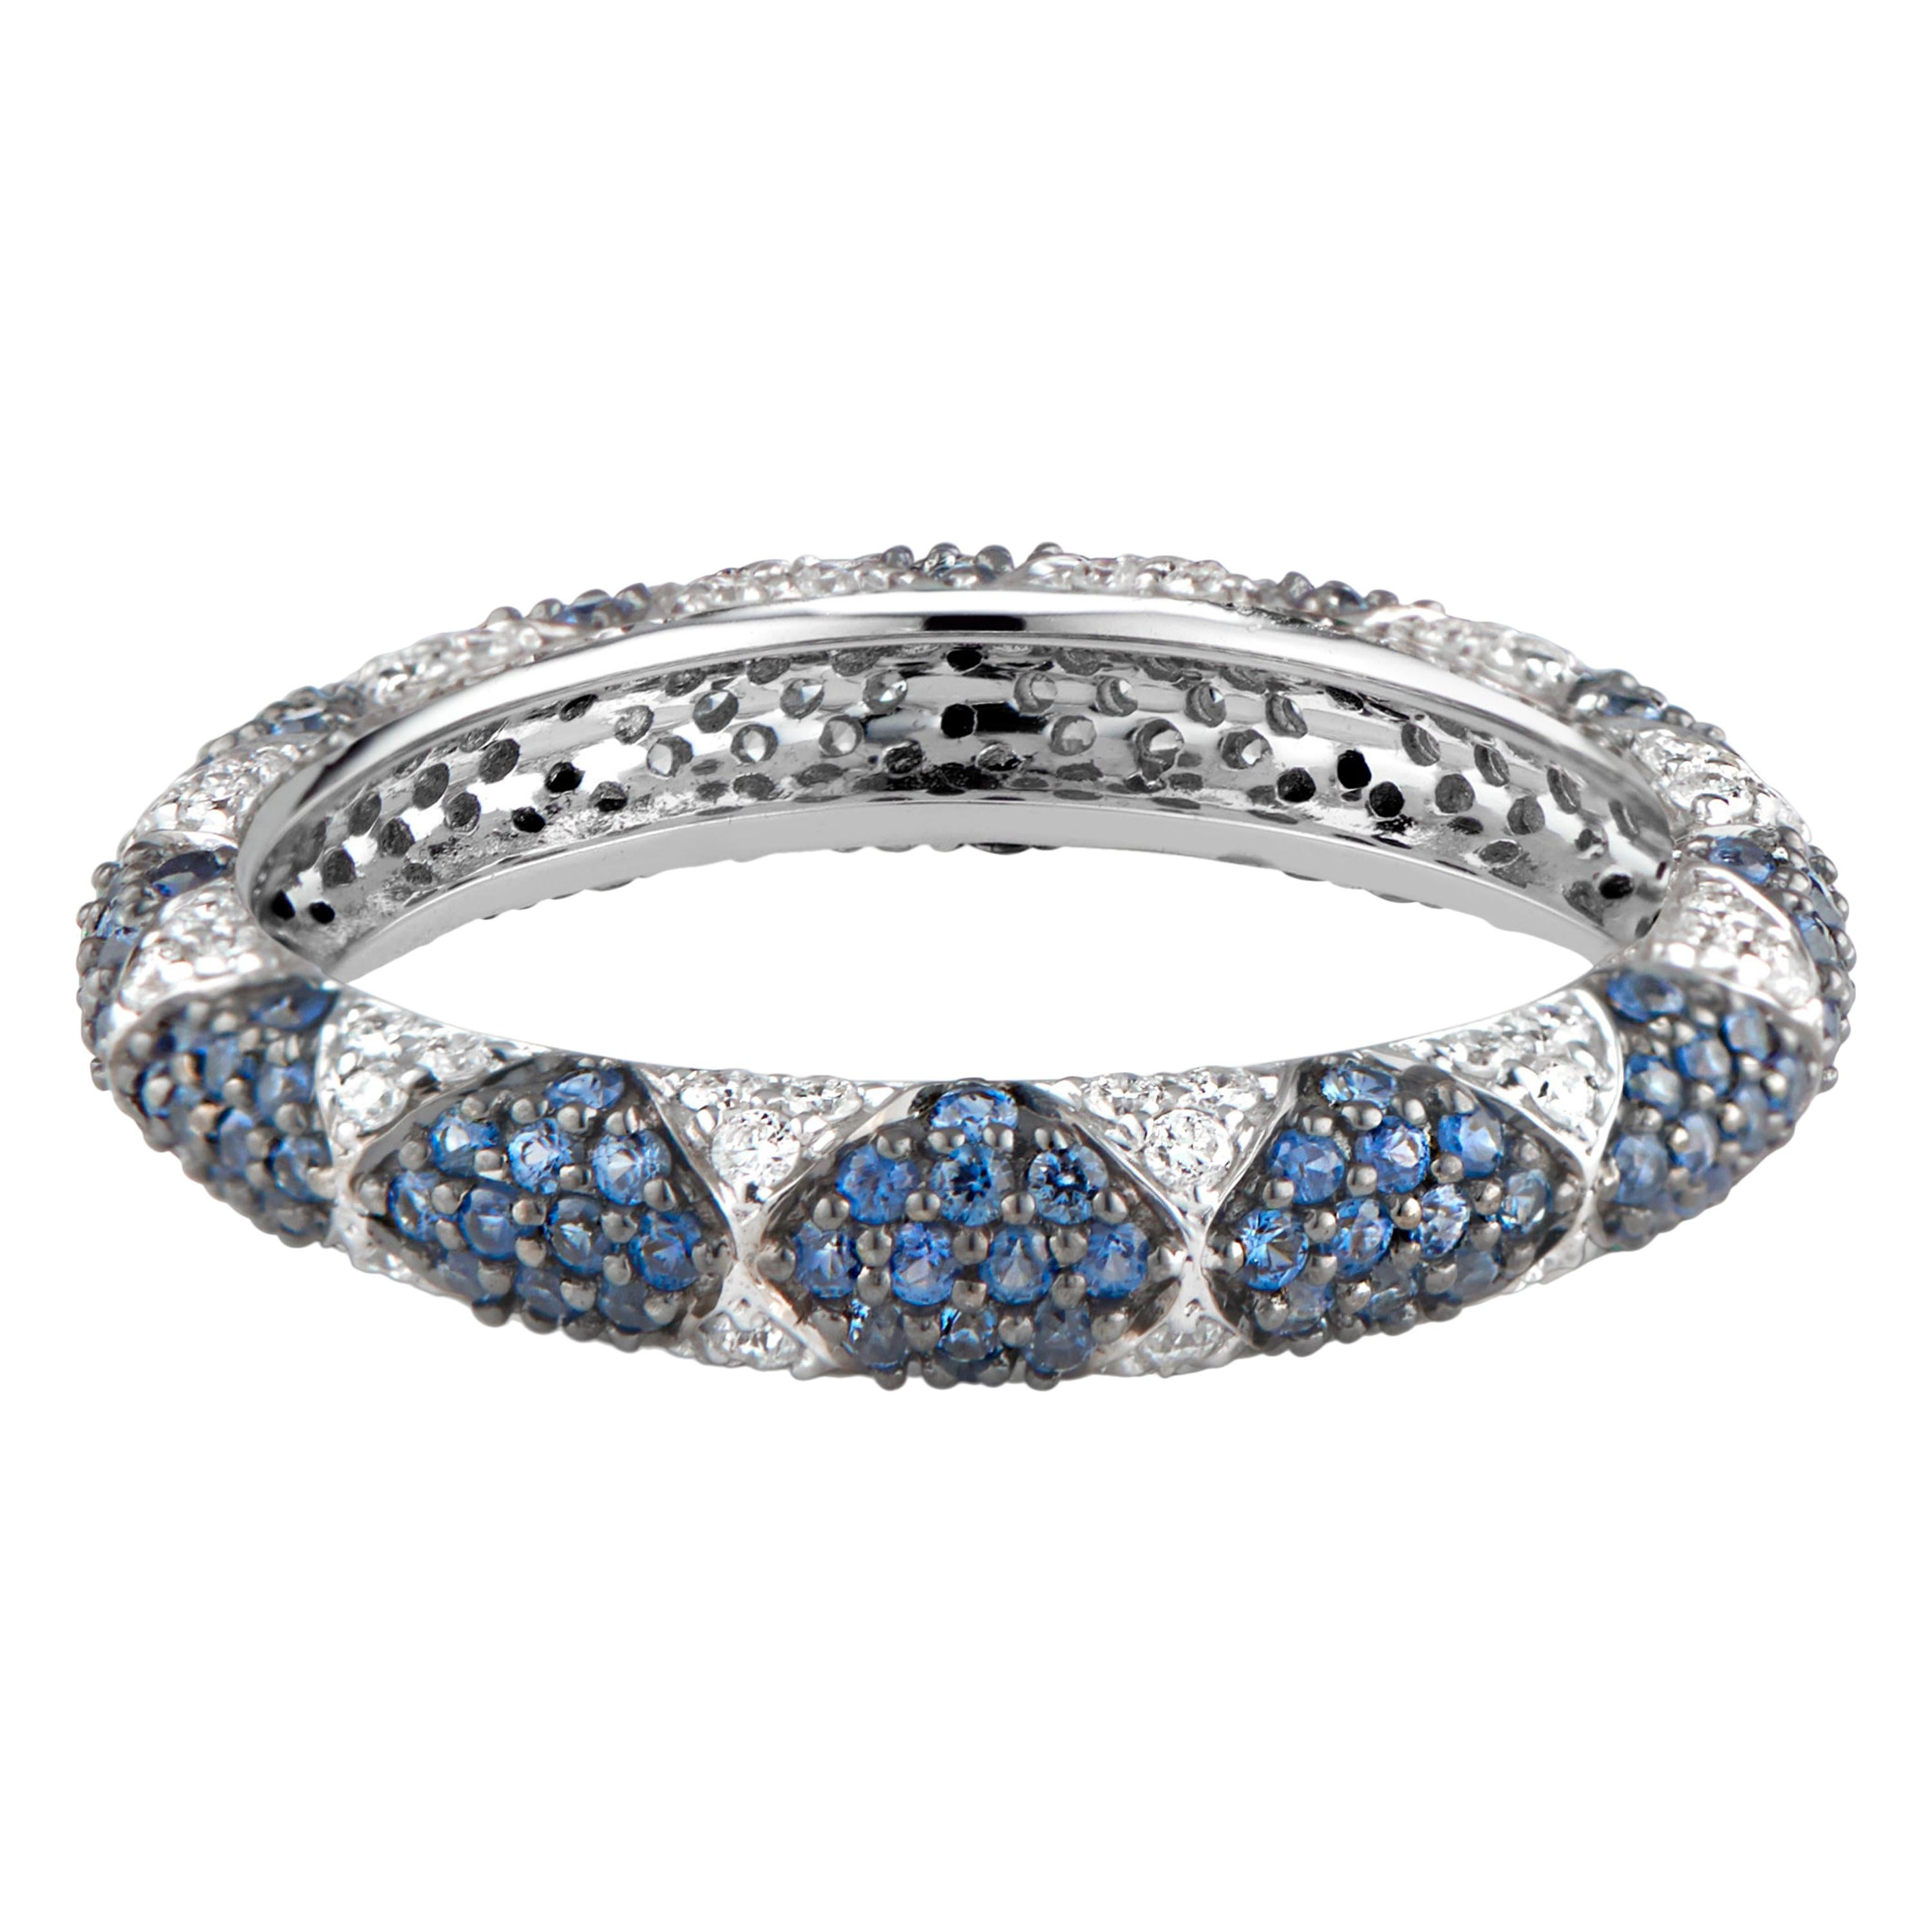 3206b3088b078 Sapphire And Diamond Eternity Bands - 82 For Sale on 1stdibs